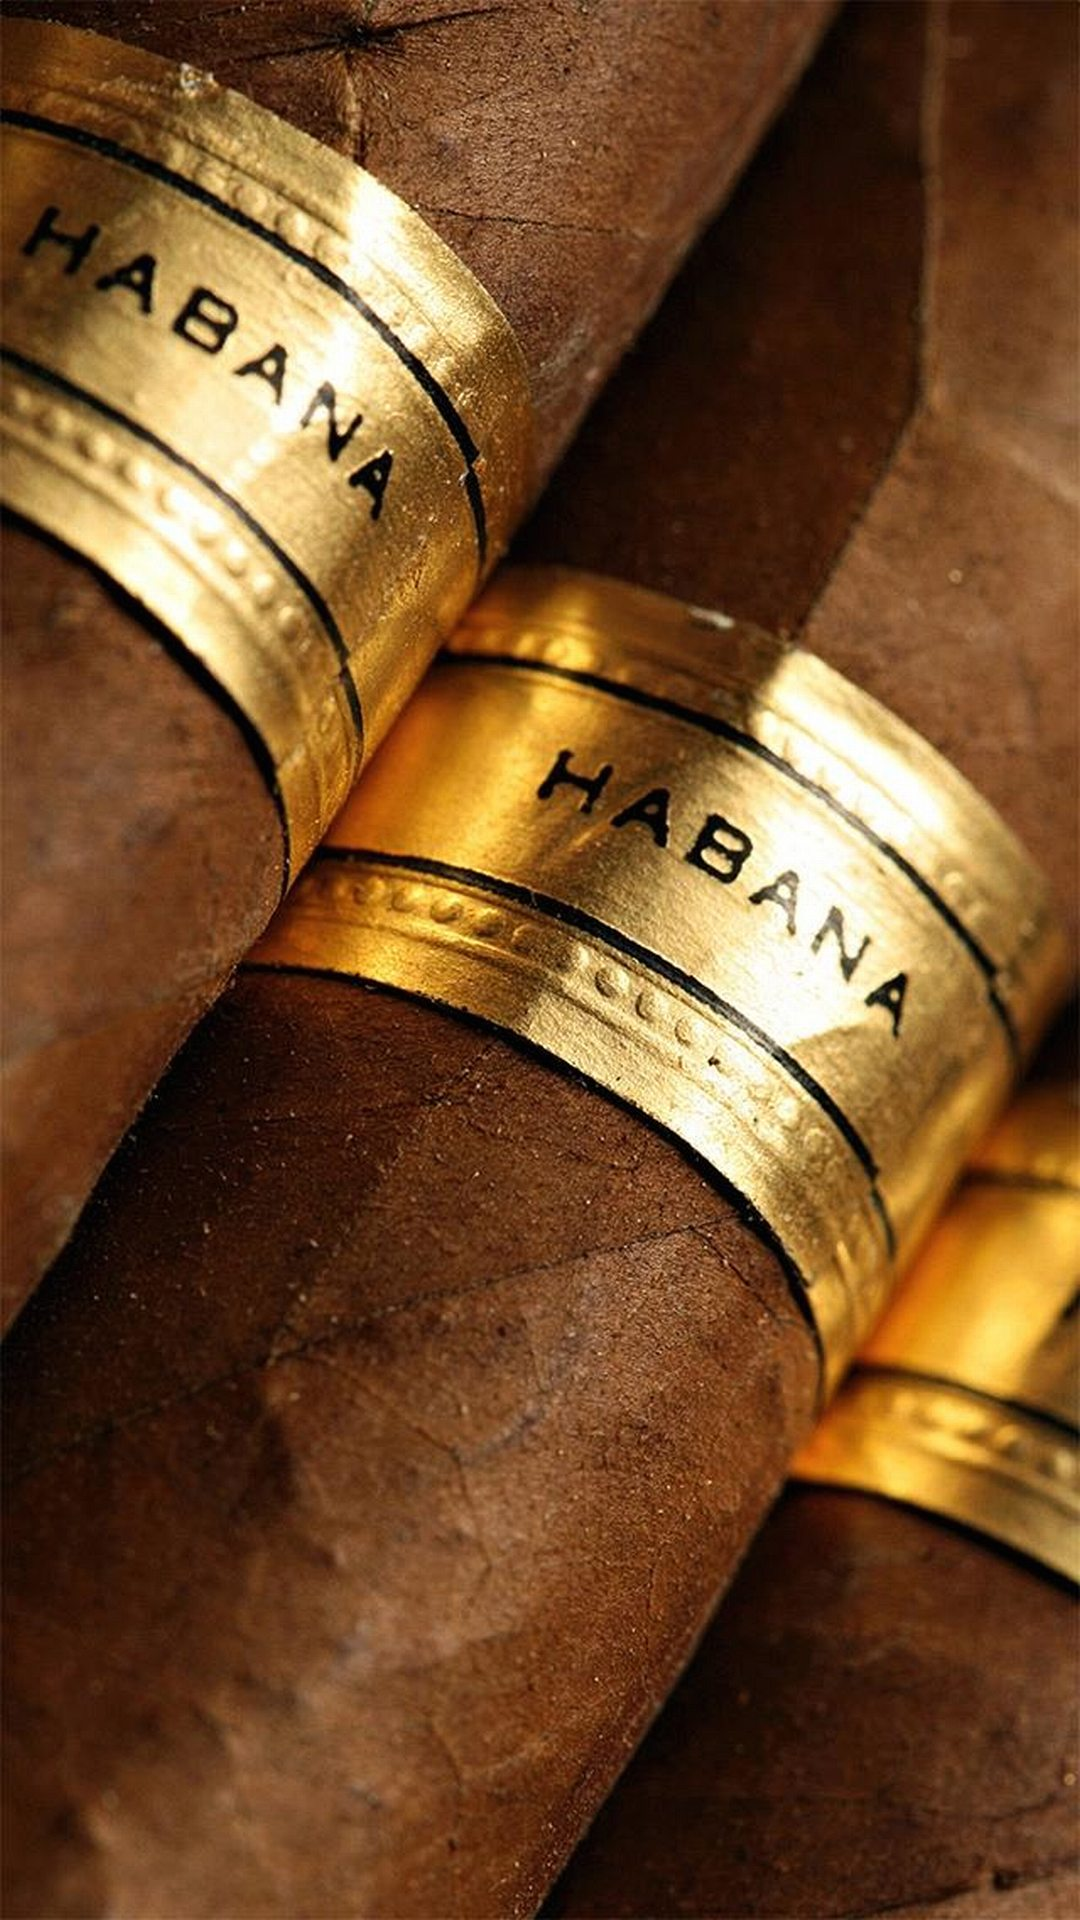 Habana Cigars - Best htc one wallpapers, free and easy to ...